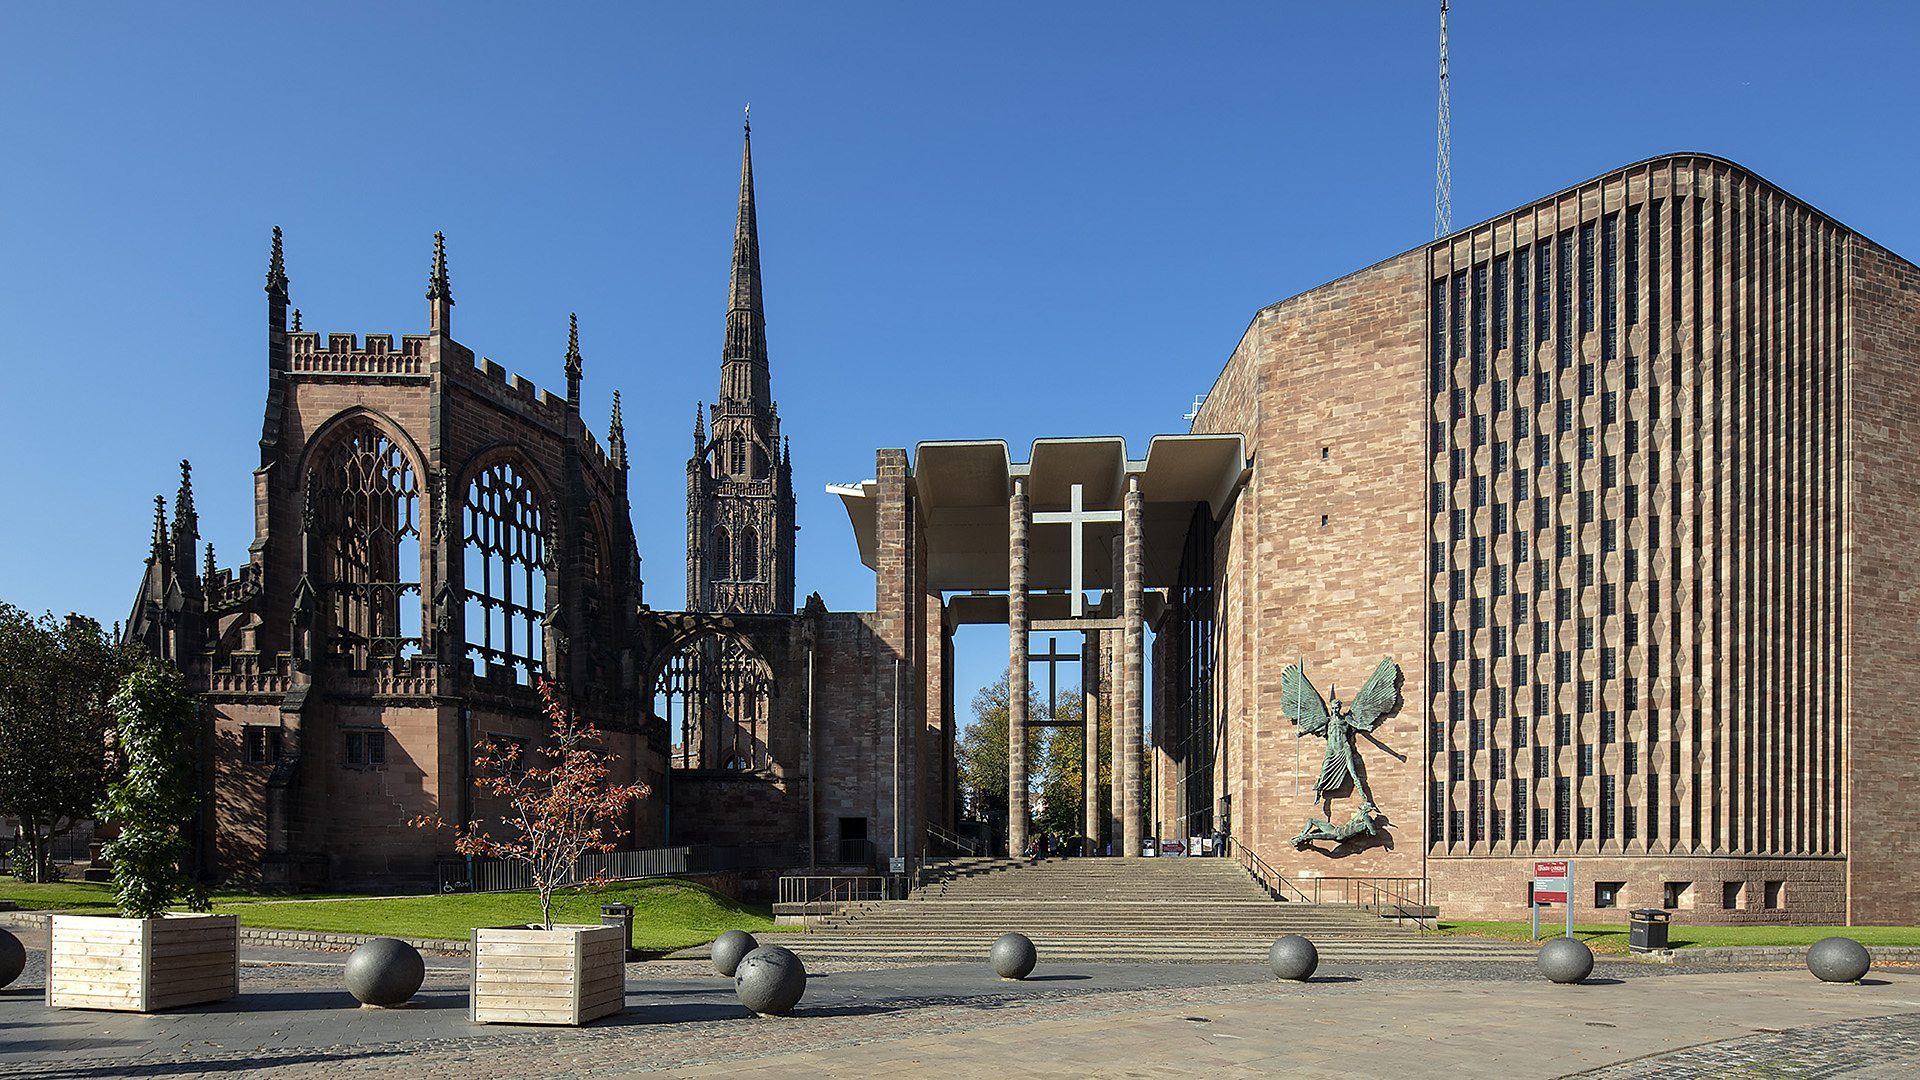 BBC One - Antiques Roadshow - Coventry Cathedral